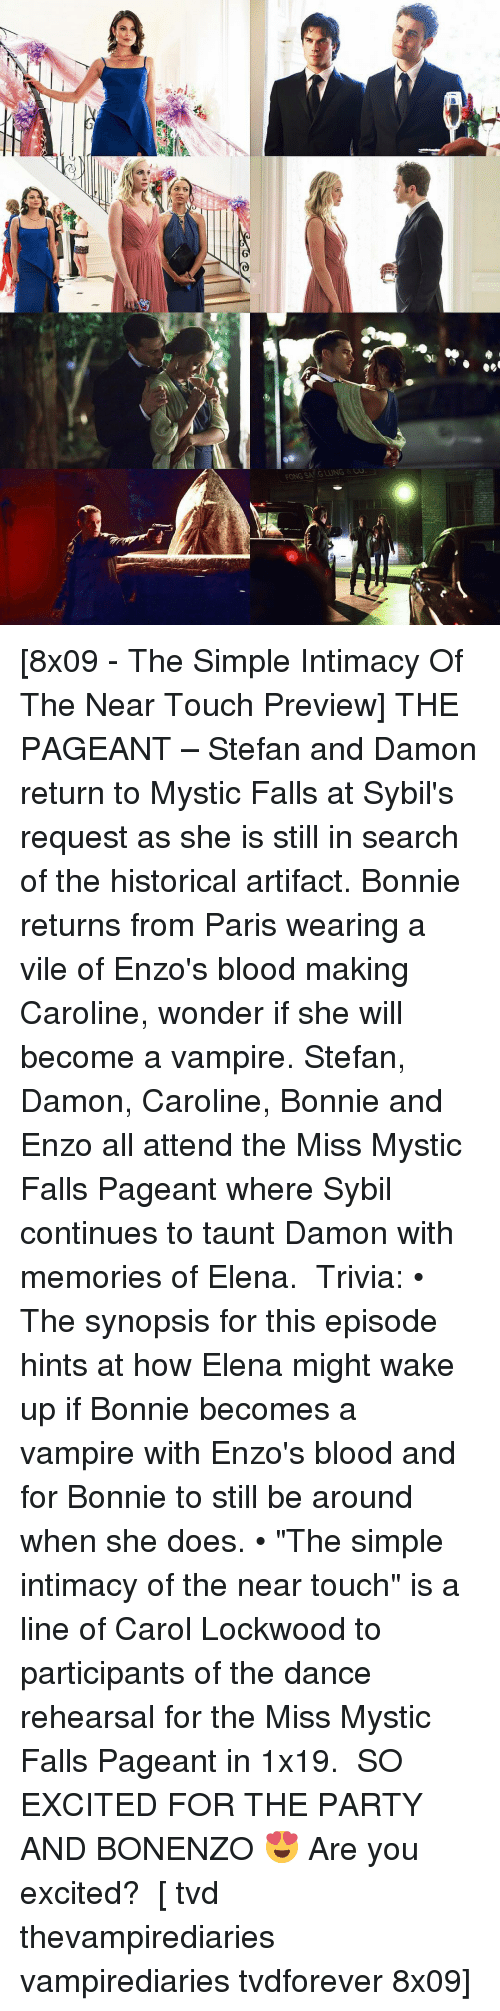 "Memes, Paris, and Historical: [8x09 - The Simple Intimacy Of The Near Touch Preview] THE PAGEANT – Stefan and Damon return to Mystic Falls at Sybil's request as she is still in search of the historical artifact. Bonnie returns from Paris wearing a vile of Enzo's blood making Caroline, wonder if she will become a vampire. Stefan, Damon, Caroline, Bonnie and Enzo all attend the Miss Mystic Falls Pageant where Sybil continues to taunt Damon with memories of Elena. ⠀ Trivia: • The synopsis for this episode hints at how Elena might wake up if Bonnie becomes a vampire with Enzo's blood and for Bonnie to still be around when she does. • ""The simple intimacy of the near touch"" is a line of Carol Lockwood to participants of the dance rehearsal for the Miss Mystic Falls Pageant in 1x19. ⠀ SO EXCITED FOR THE PARTY AND BONENZO 😍 Are you excited? ⠀ [ tvd thevampirediaries vampirediaries tvdforever 8x09]"